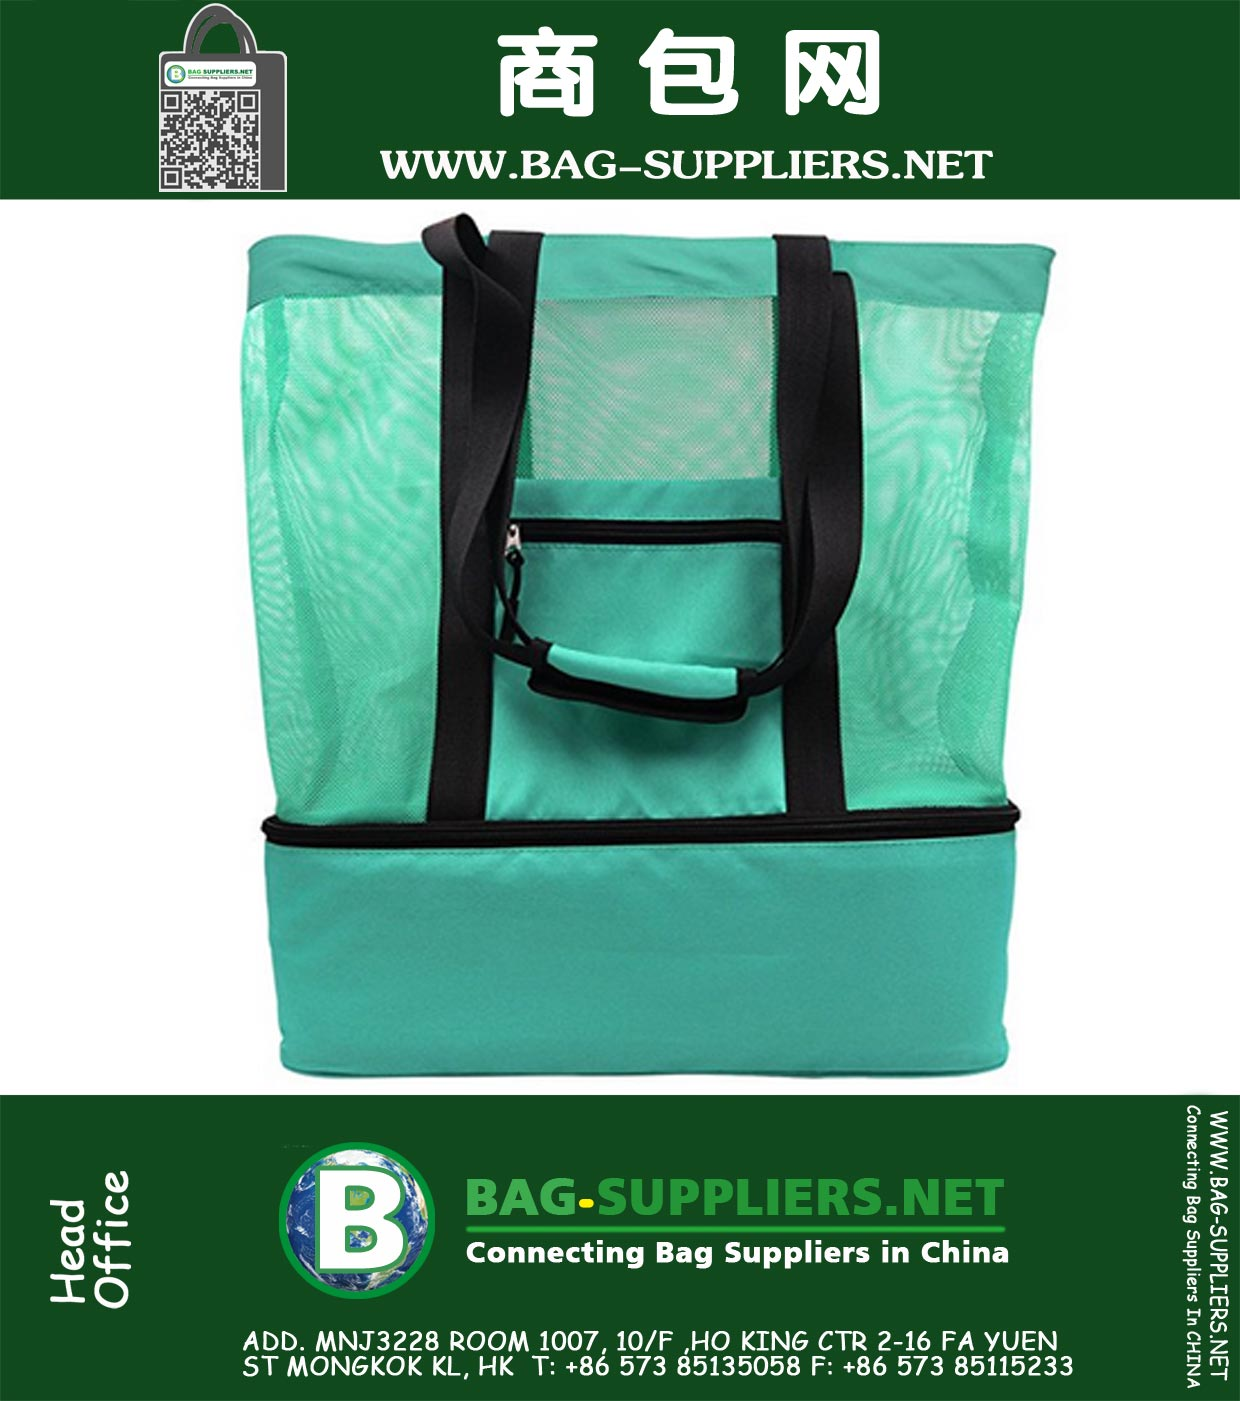 3e66c725fba4 Mesh Beach Tote Bag with Insulated Picnic Cooler Ice Bags, Green 40L ...